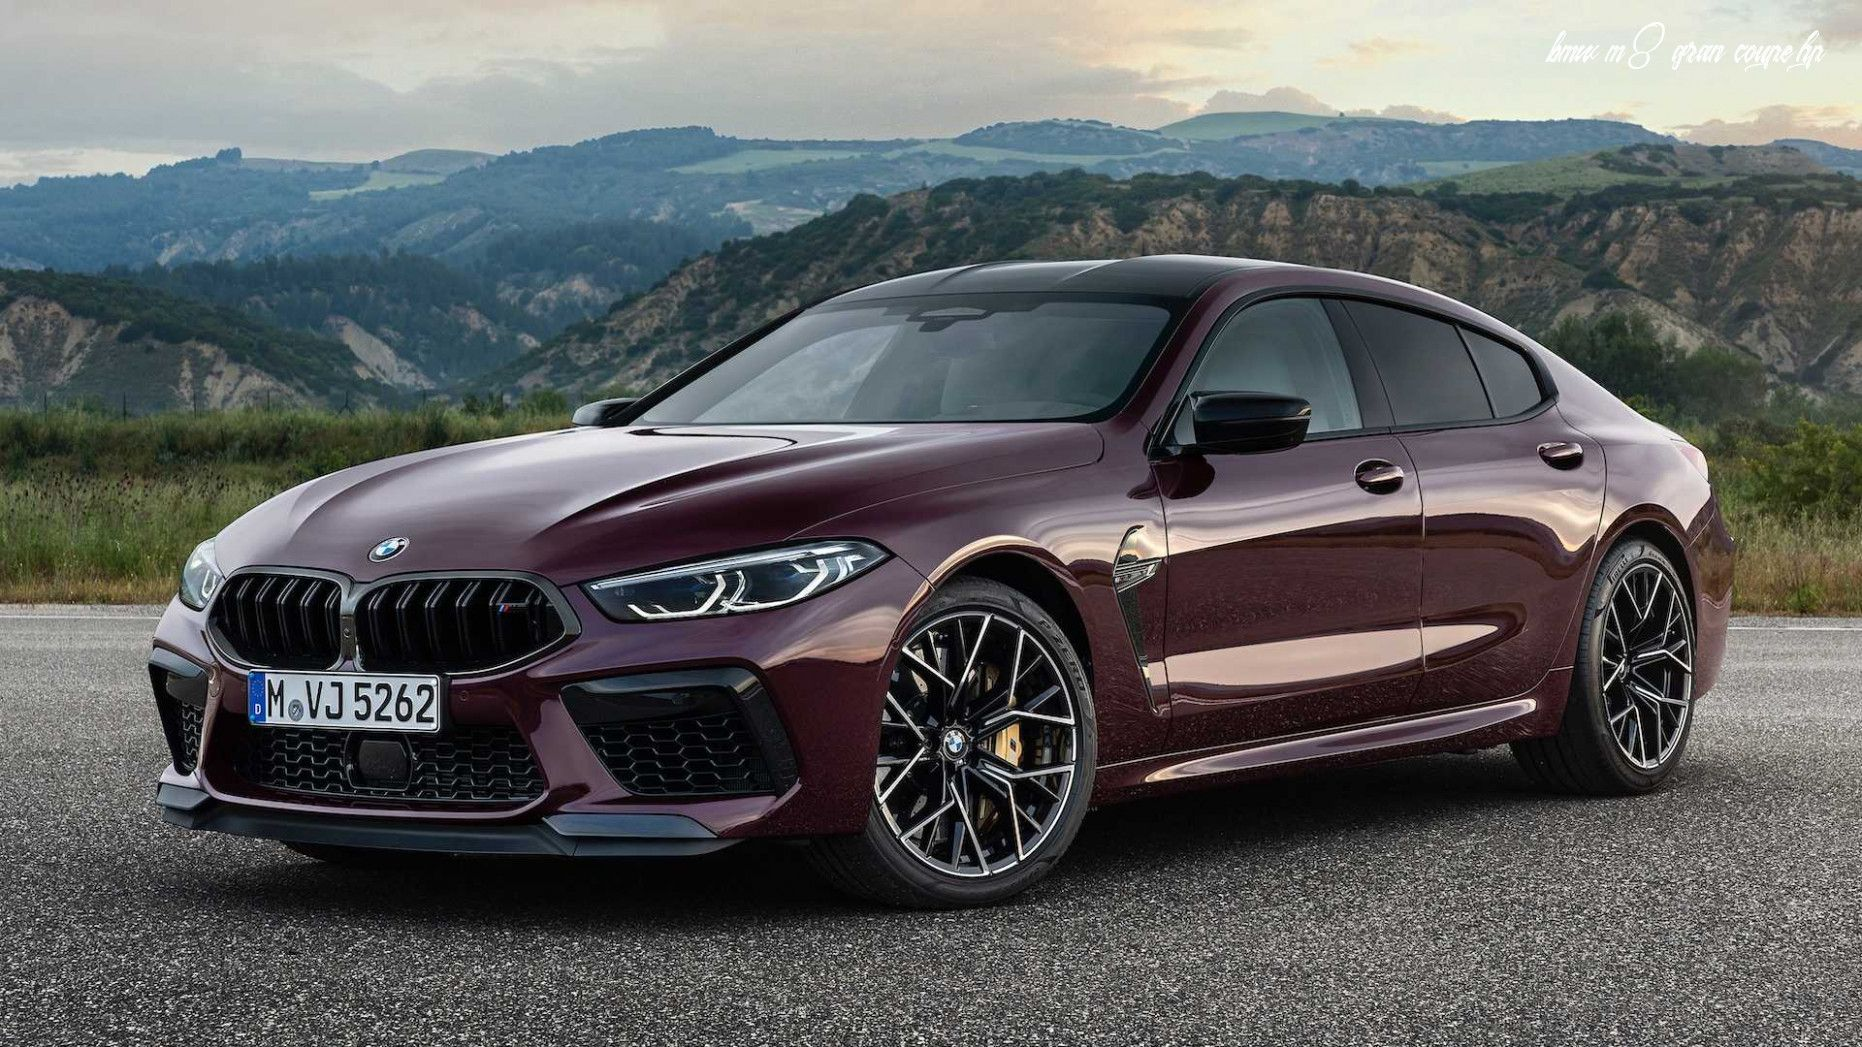 Bmw M8 Gran Coupe Hp Price Design And Review In 2020 Bmw Gran Coupe Bmw Coupe